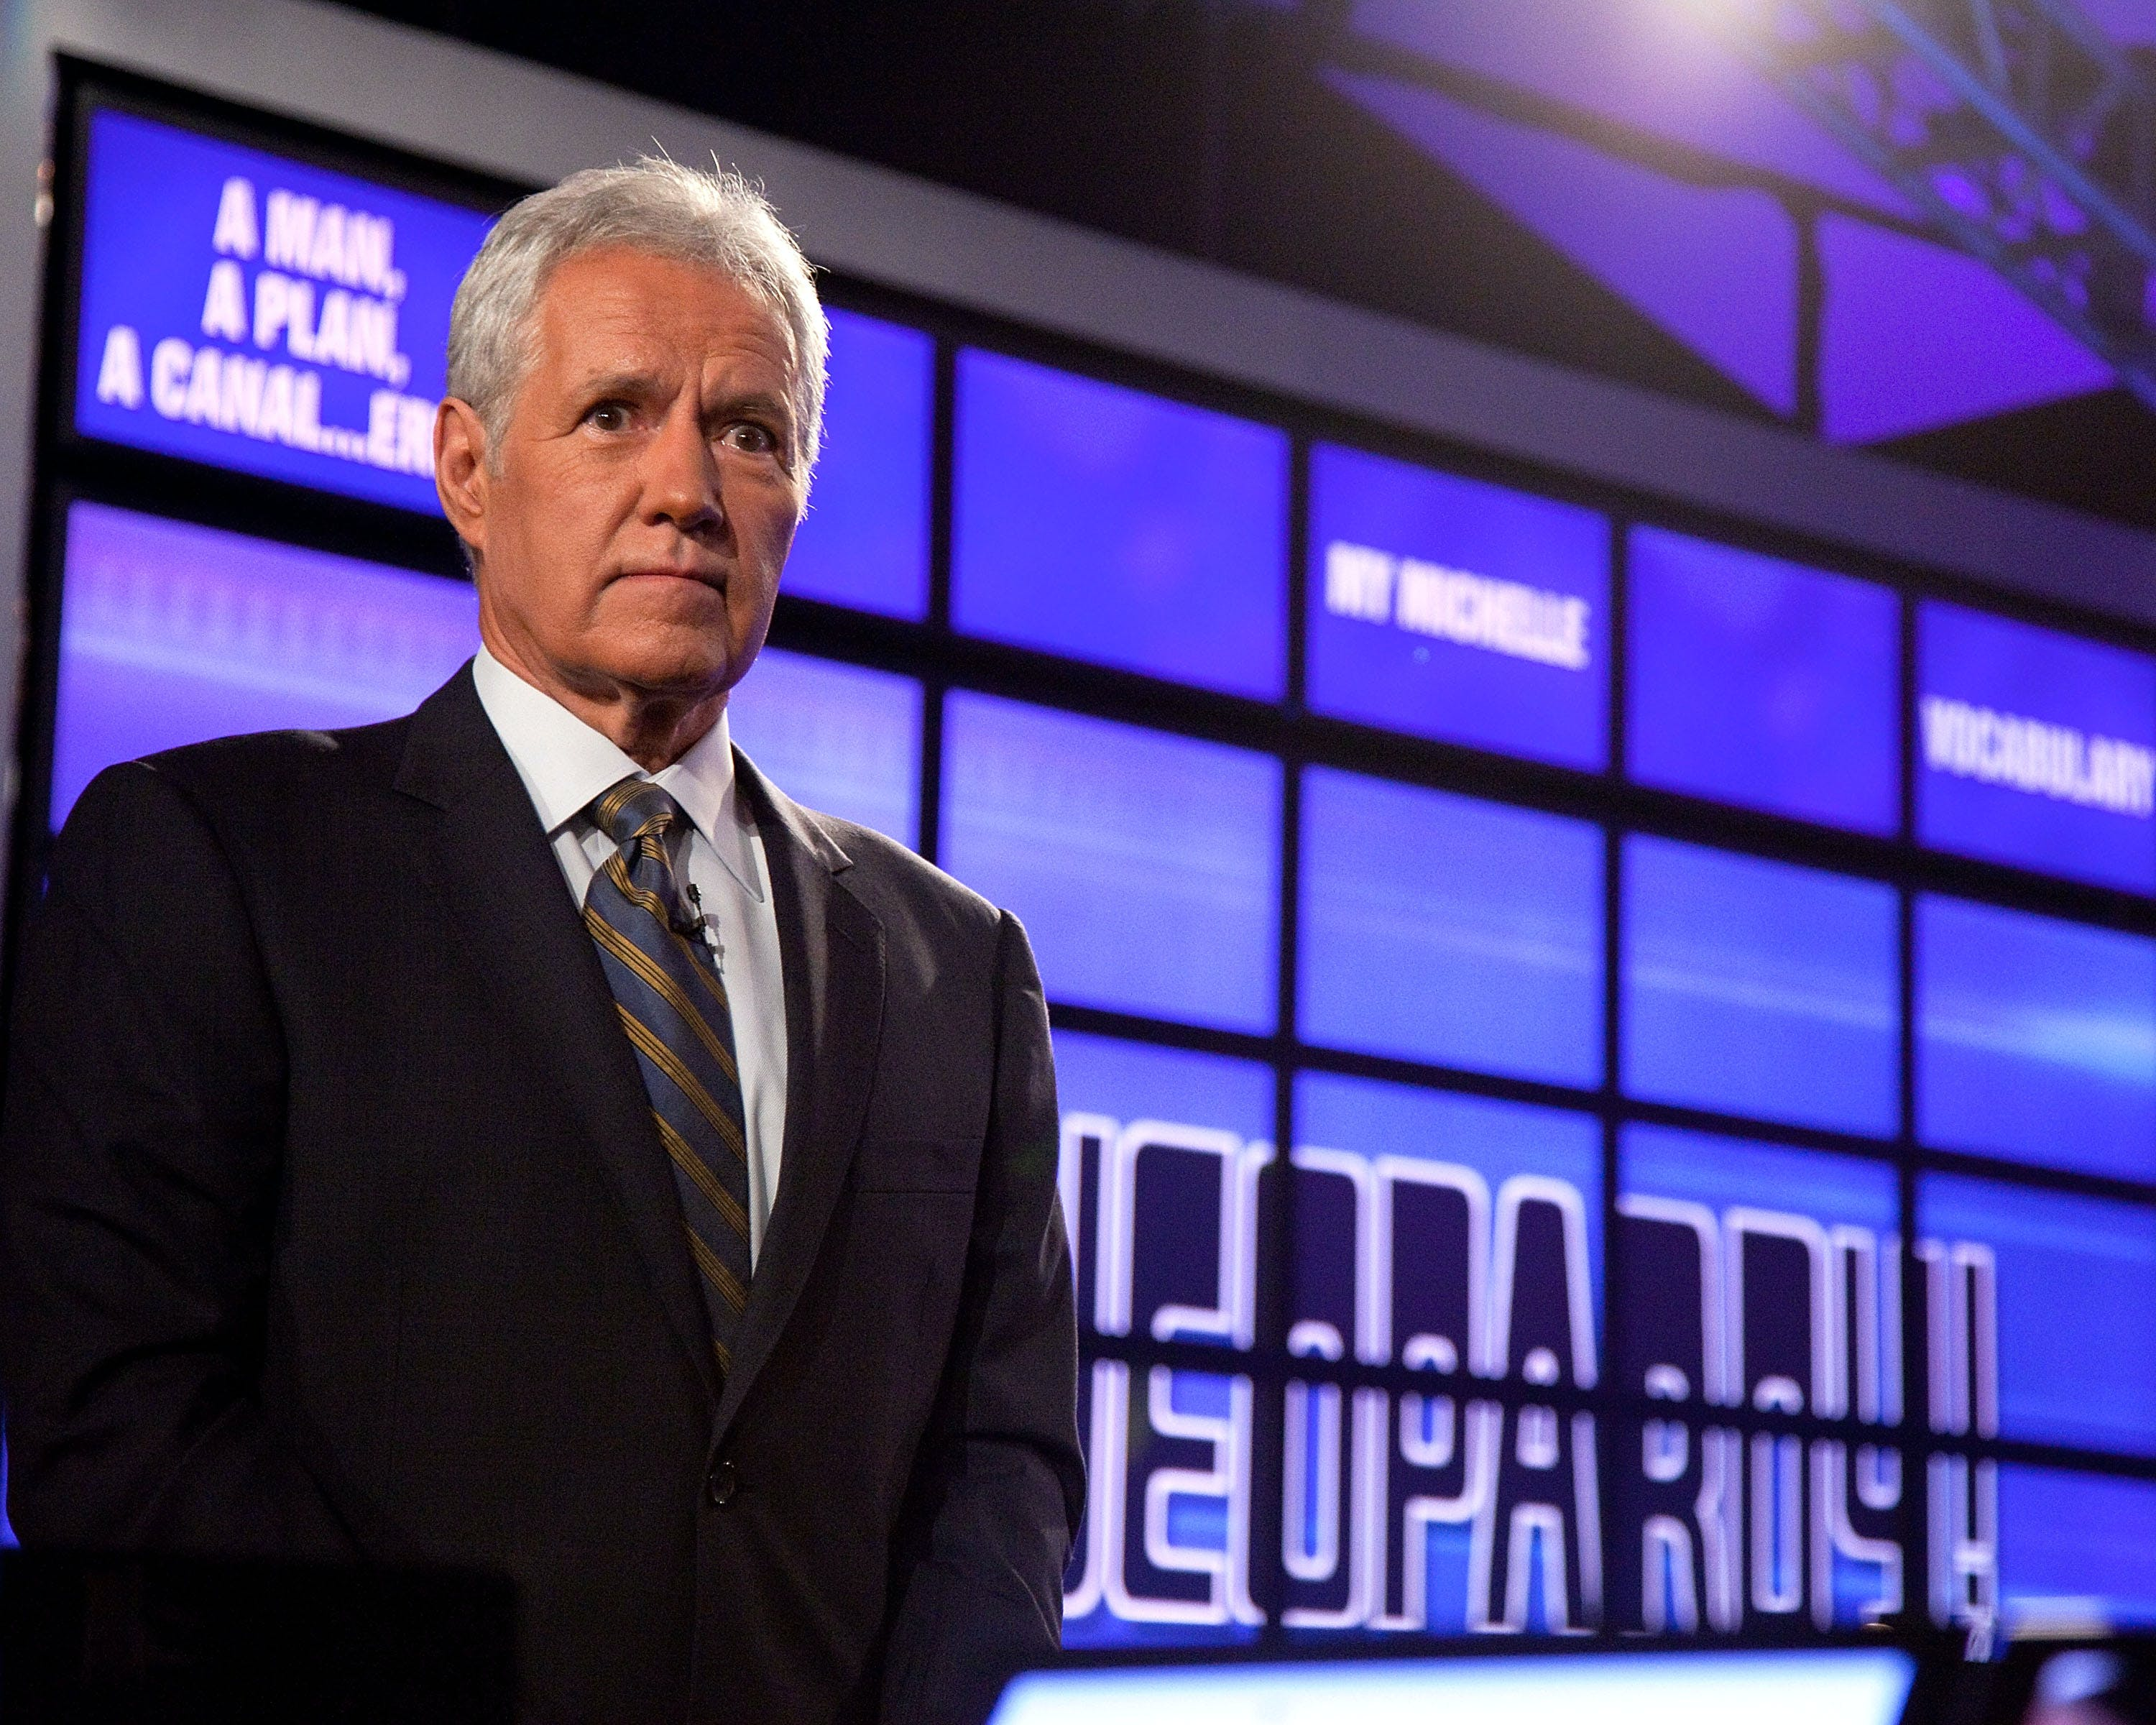 Alex Trebek Ate 6 Weed Brownies